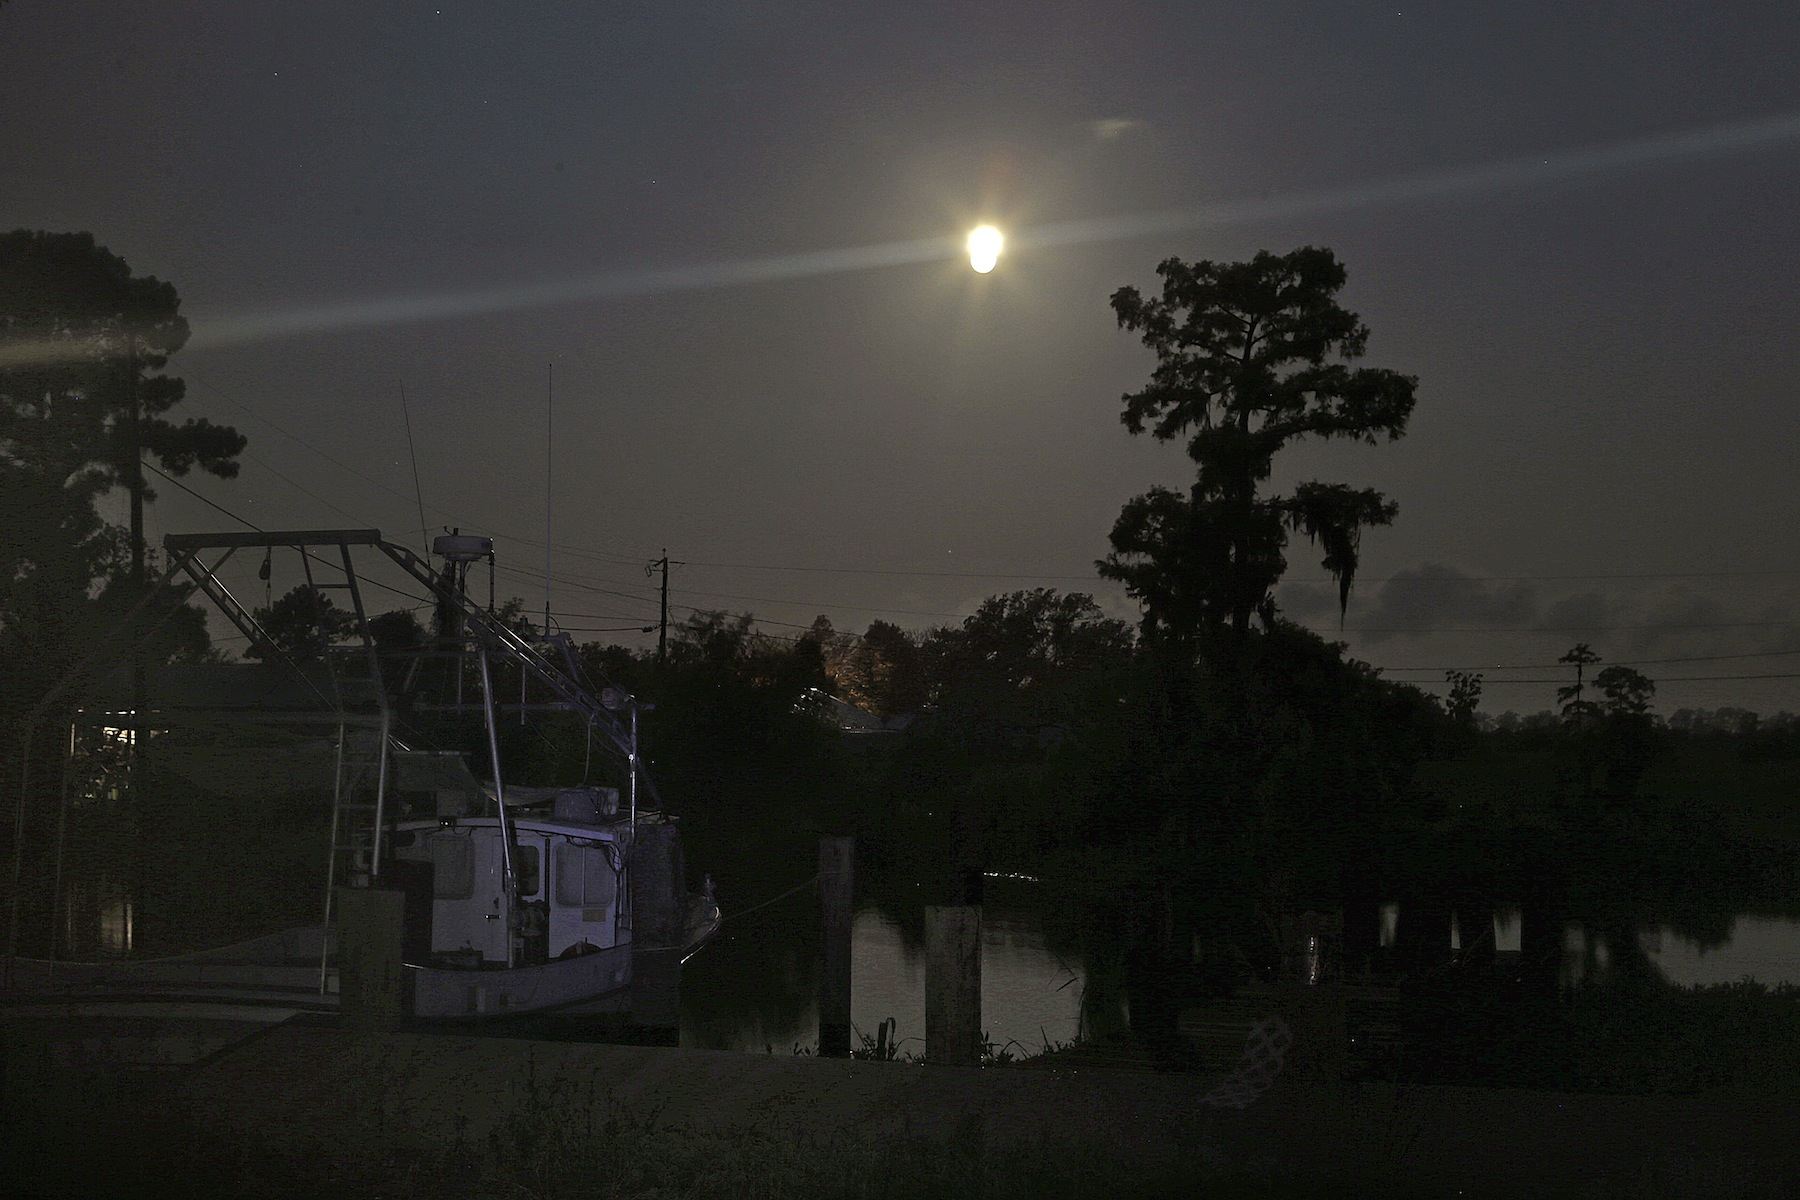 The larger-than-normal full moon referred to as Supermoon is seen setting beyond fishing camps in Akers, La., Sunday, June 23, 2013. (AP Photo/Gerald Herbert)